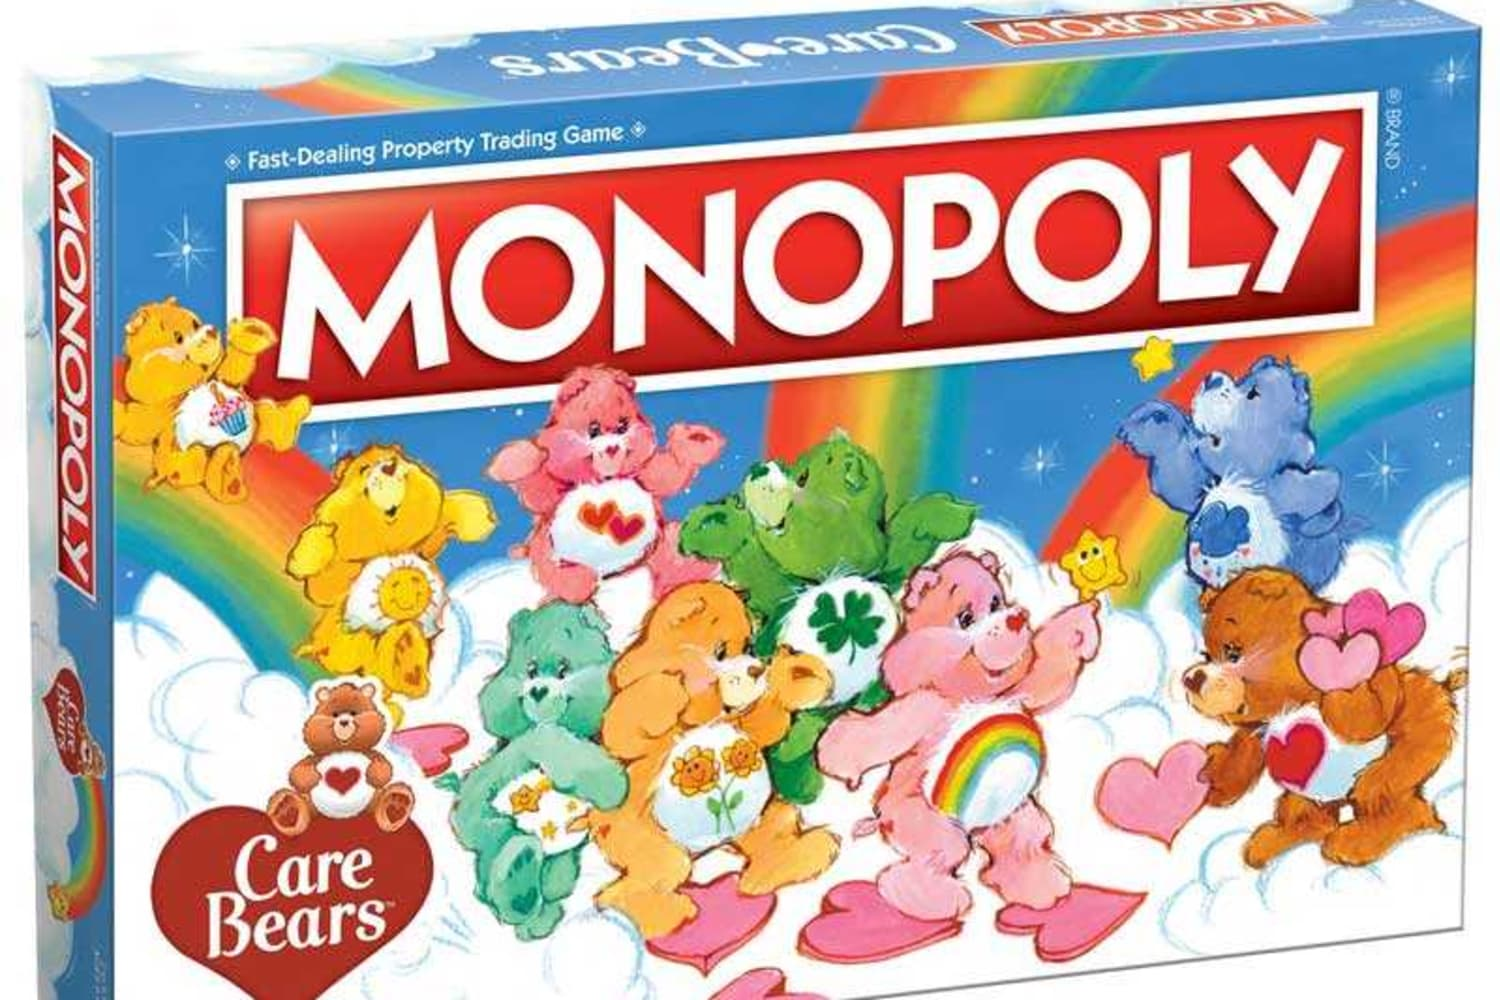 This Limited-Edition Care Bears Monopoly Will Take You Back to Your Childhood